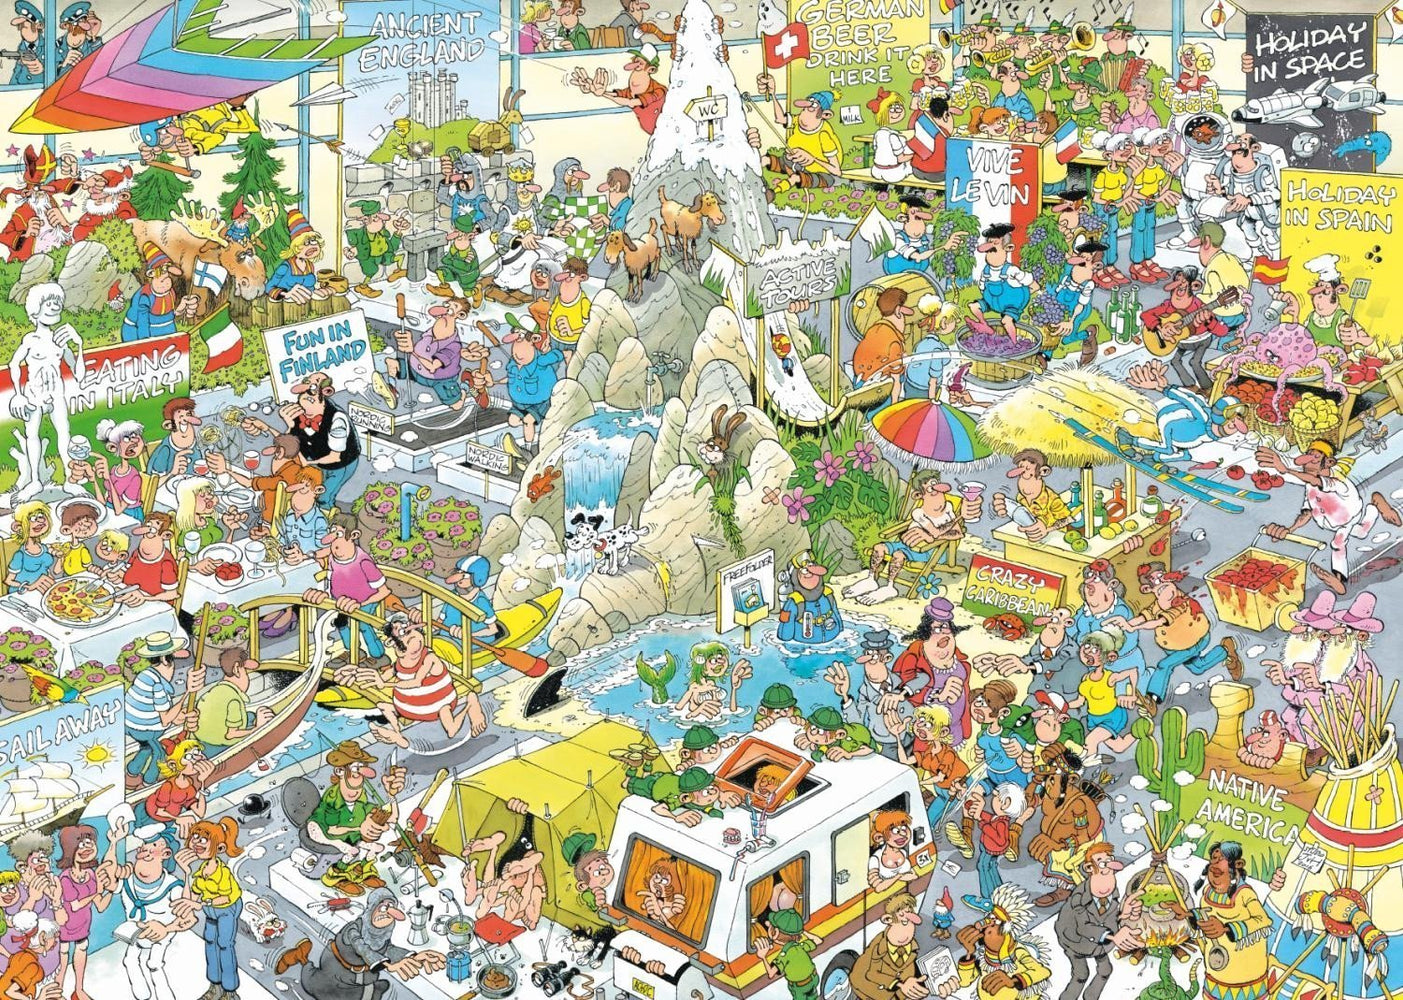 Jigsaw Puzzle - The Holiday Fair - Jan Van Haasteren 1000 Piece Jigsaw Puzzle